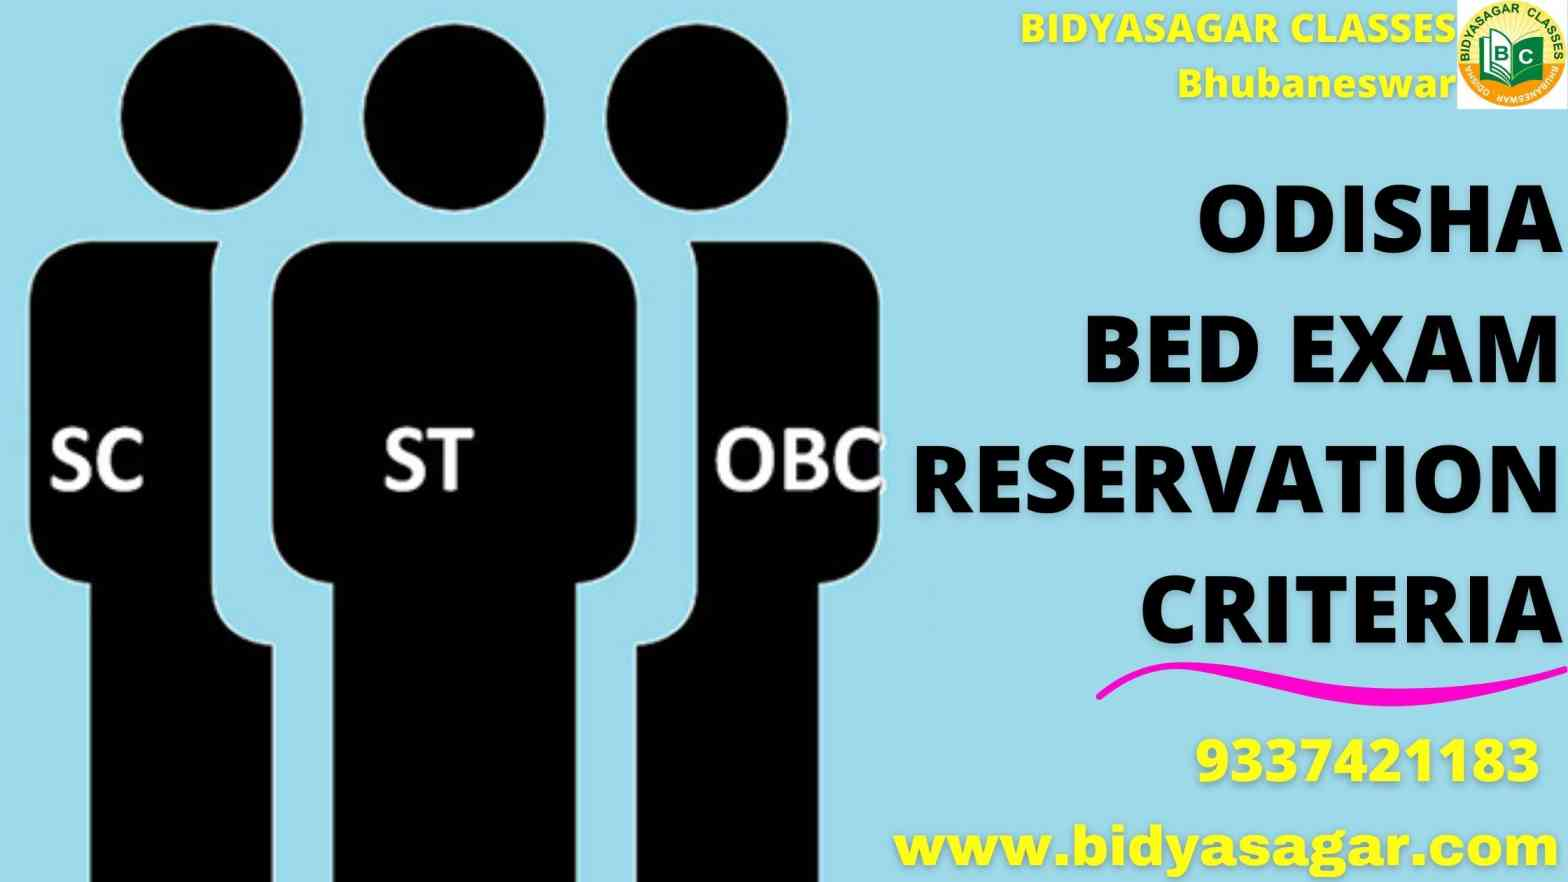 Odisha State B.Ed Entrance 2021 Exam Reservation Criteria